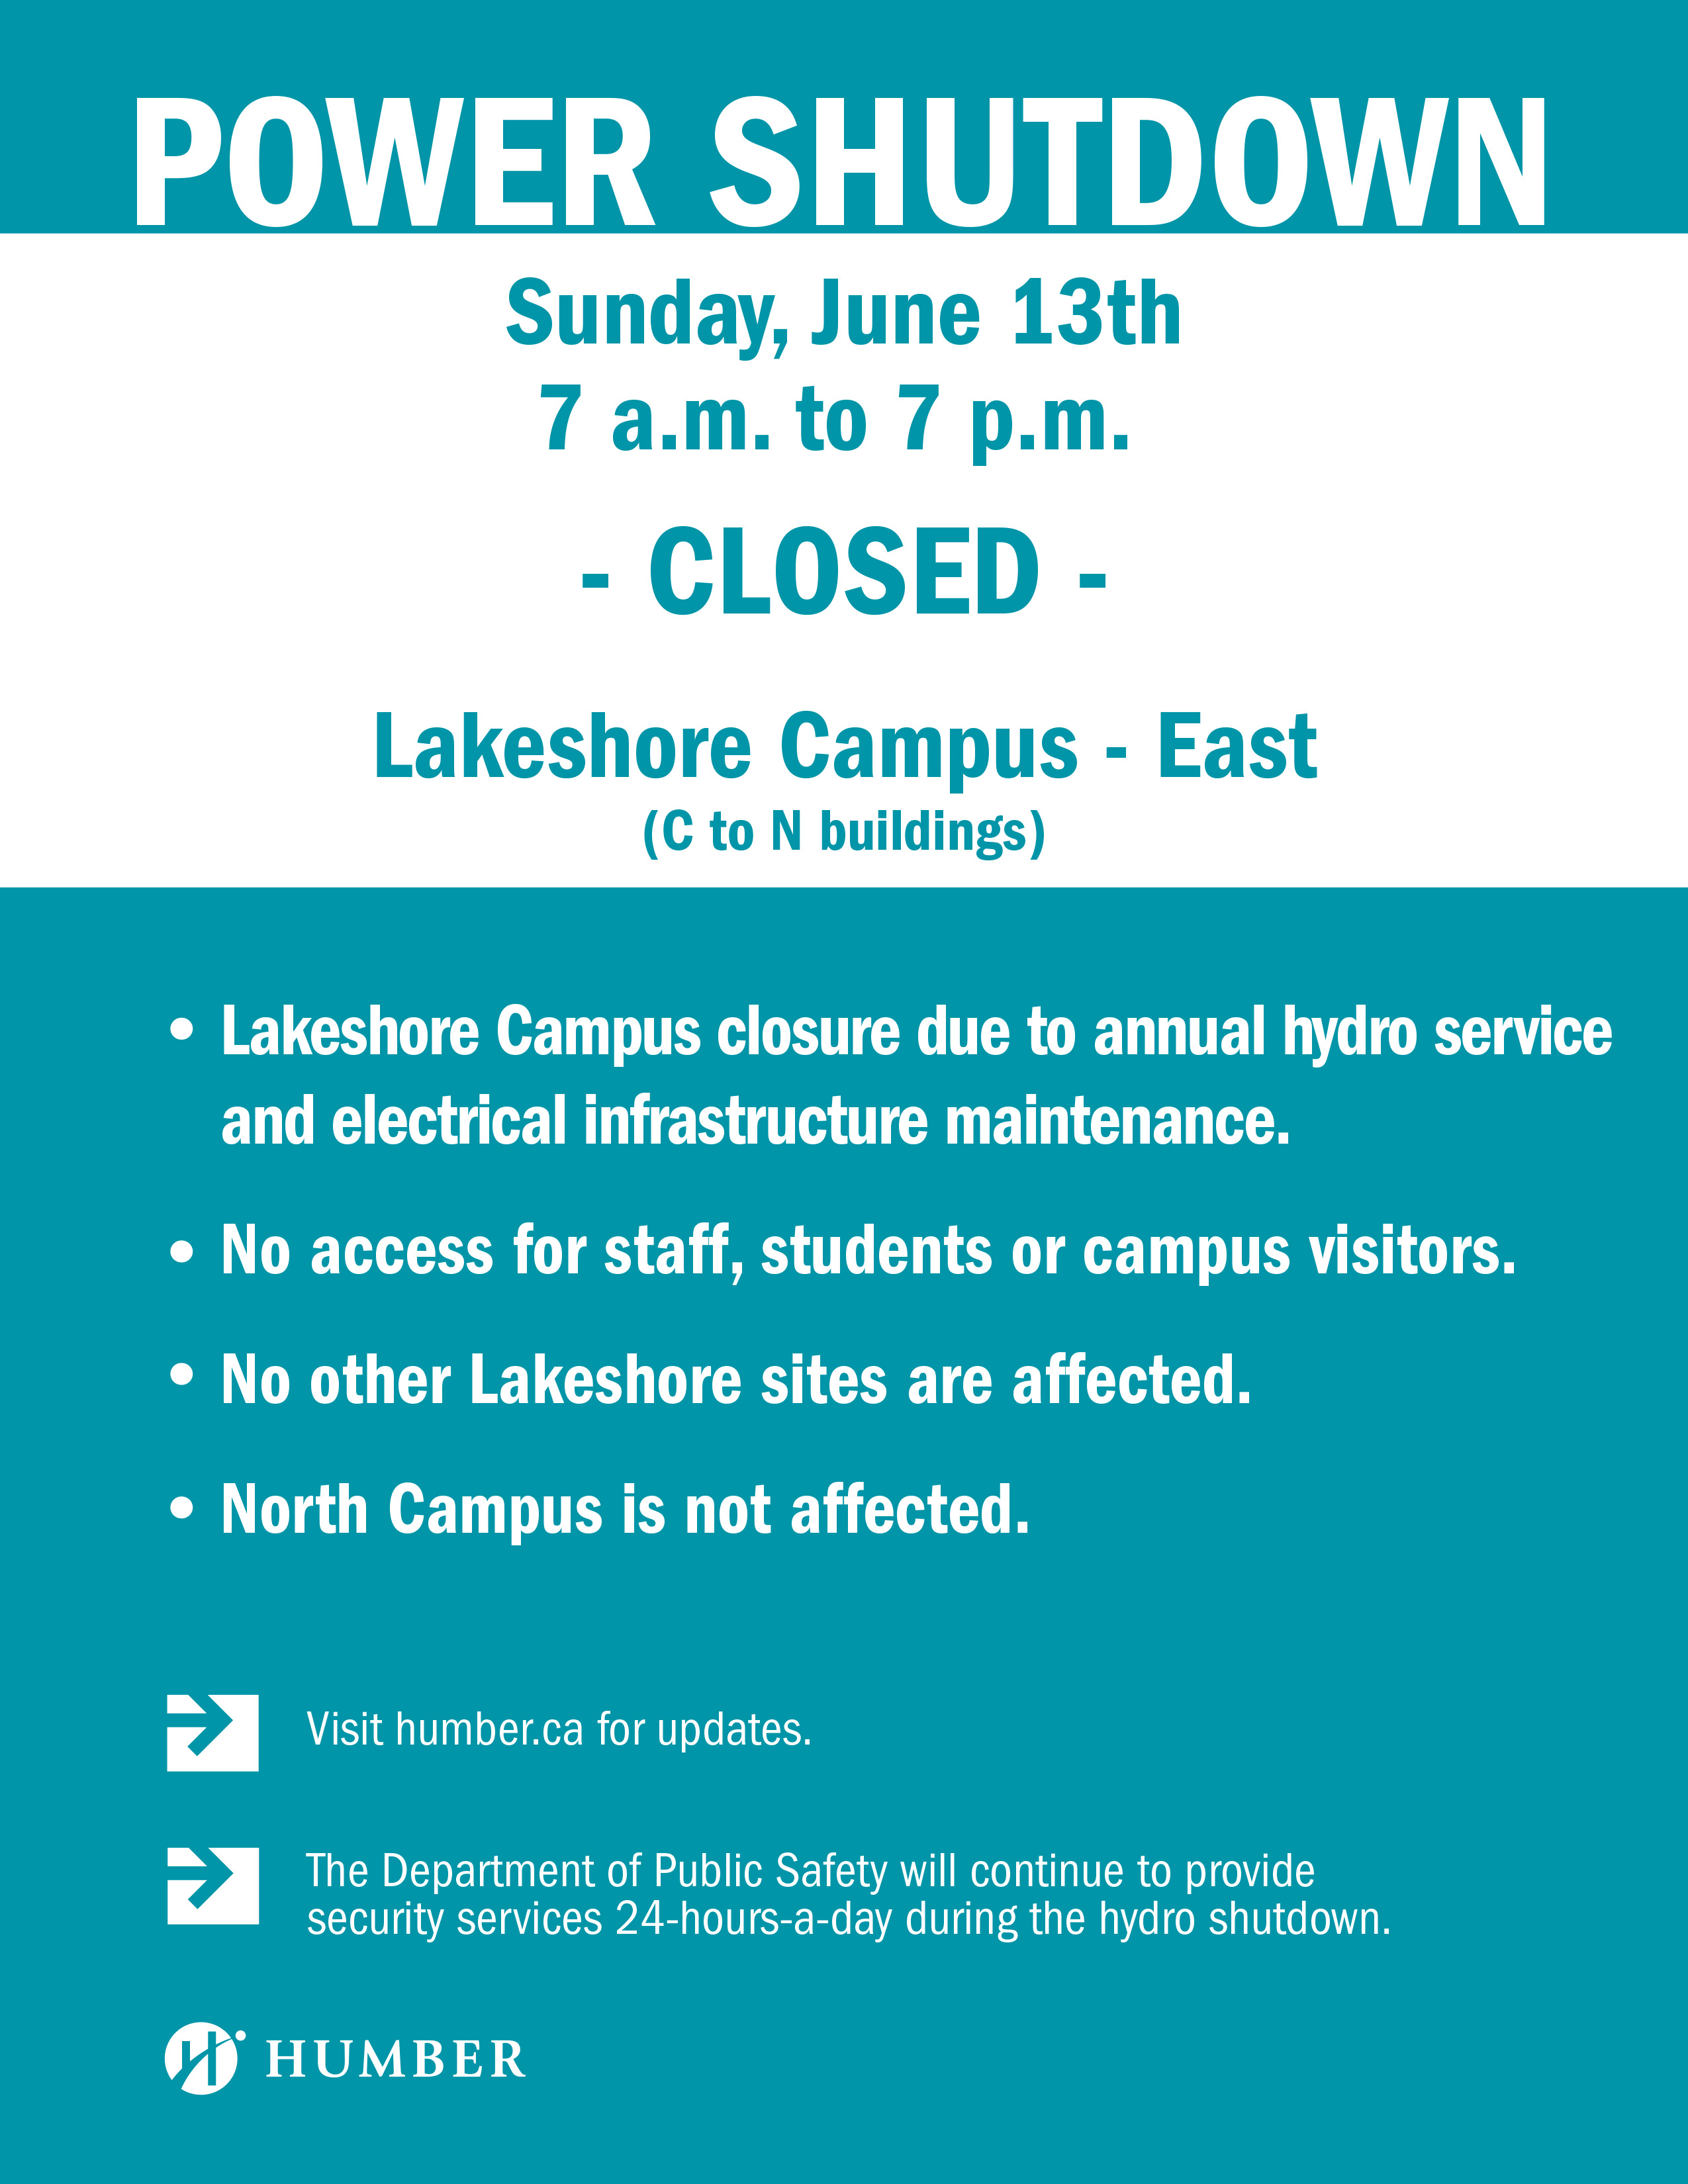 Notice of Planned Hydro Service Interruption – Lakeshore Campus: Lakeshore Campus East to be closed on June 13.